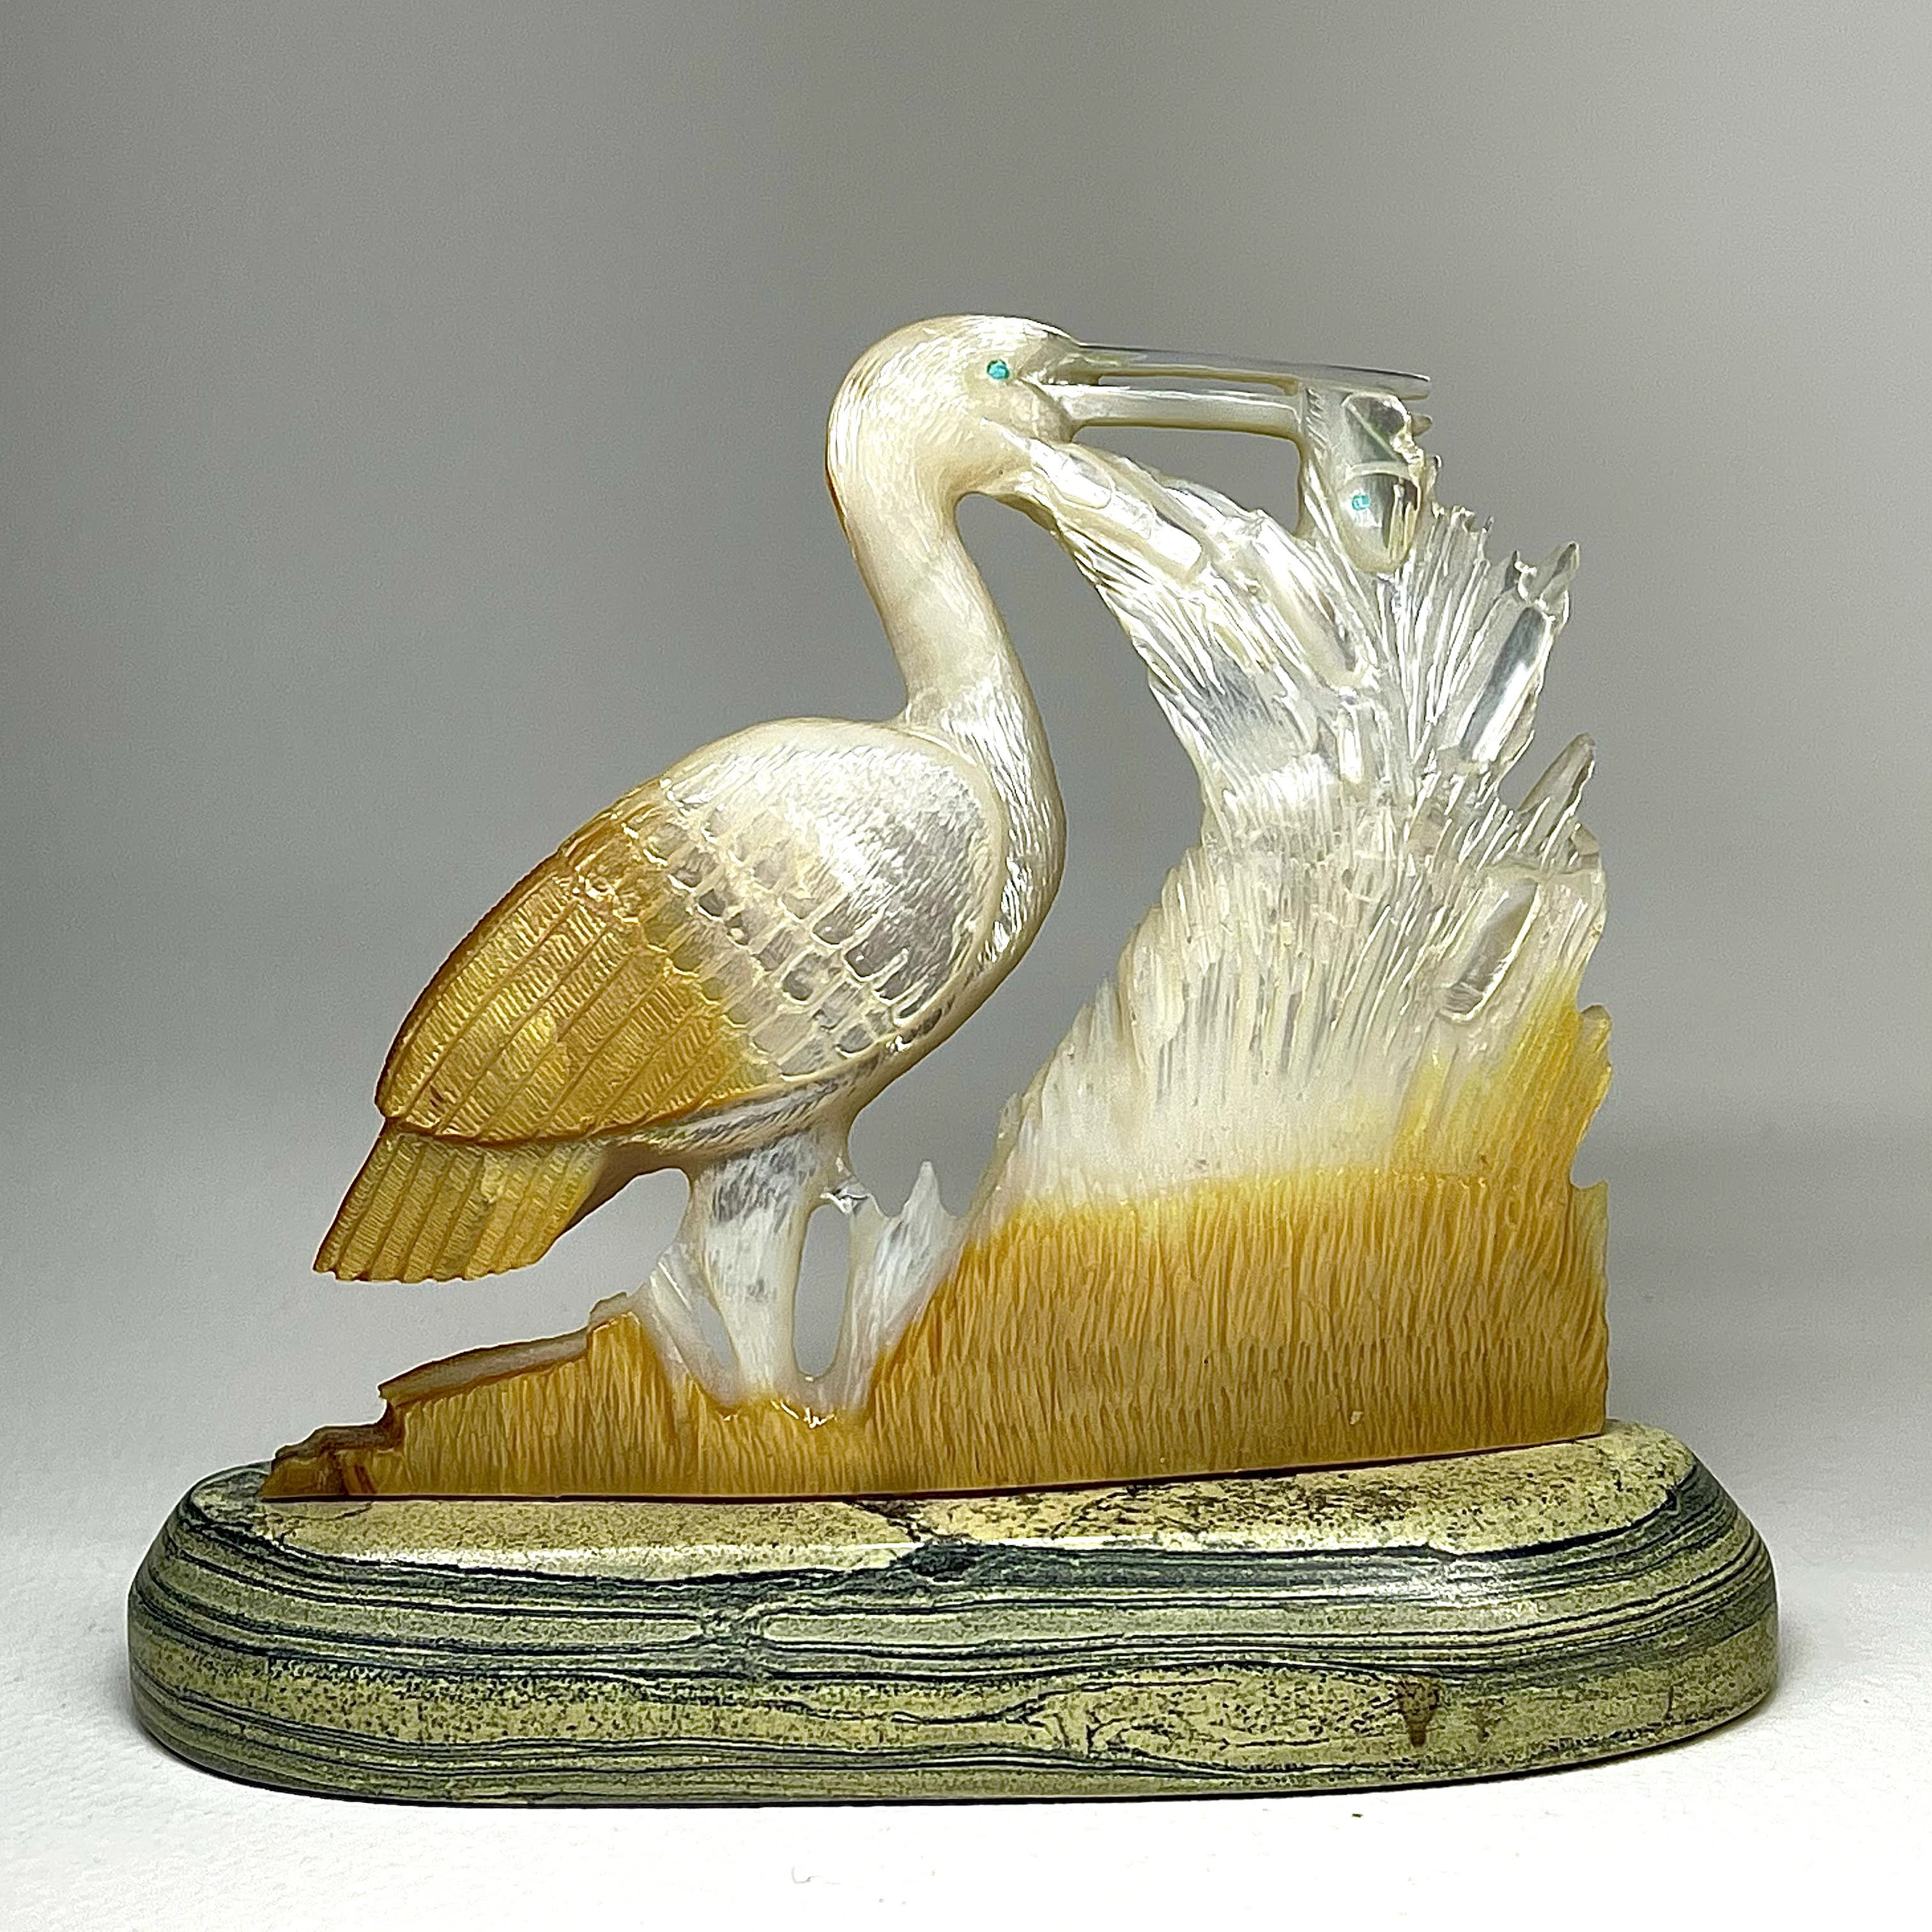 Herbert Him, Sr. | Gold-lipped Mother of Pearl | Heron  | Price: $695.  +   shipping, depending on your location | Texas sales tax applies to Texas Residents! |  CLICK  IMAGE for more views & information. | Authentic Zuni fetishes direct from Zuni Pueblo to YOU  from Zunispirits.com!